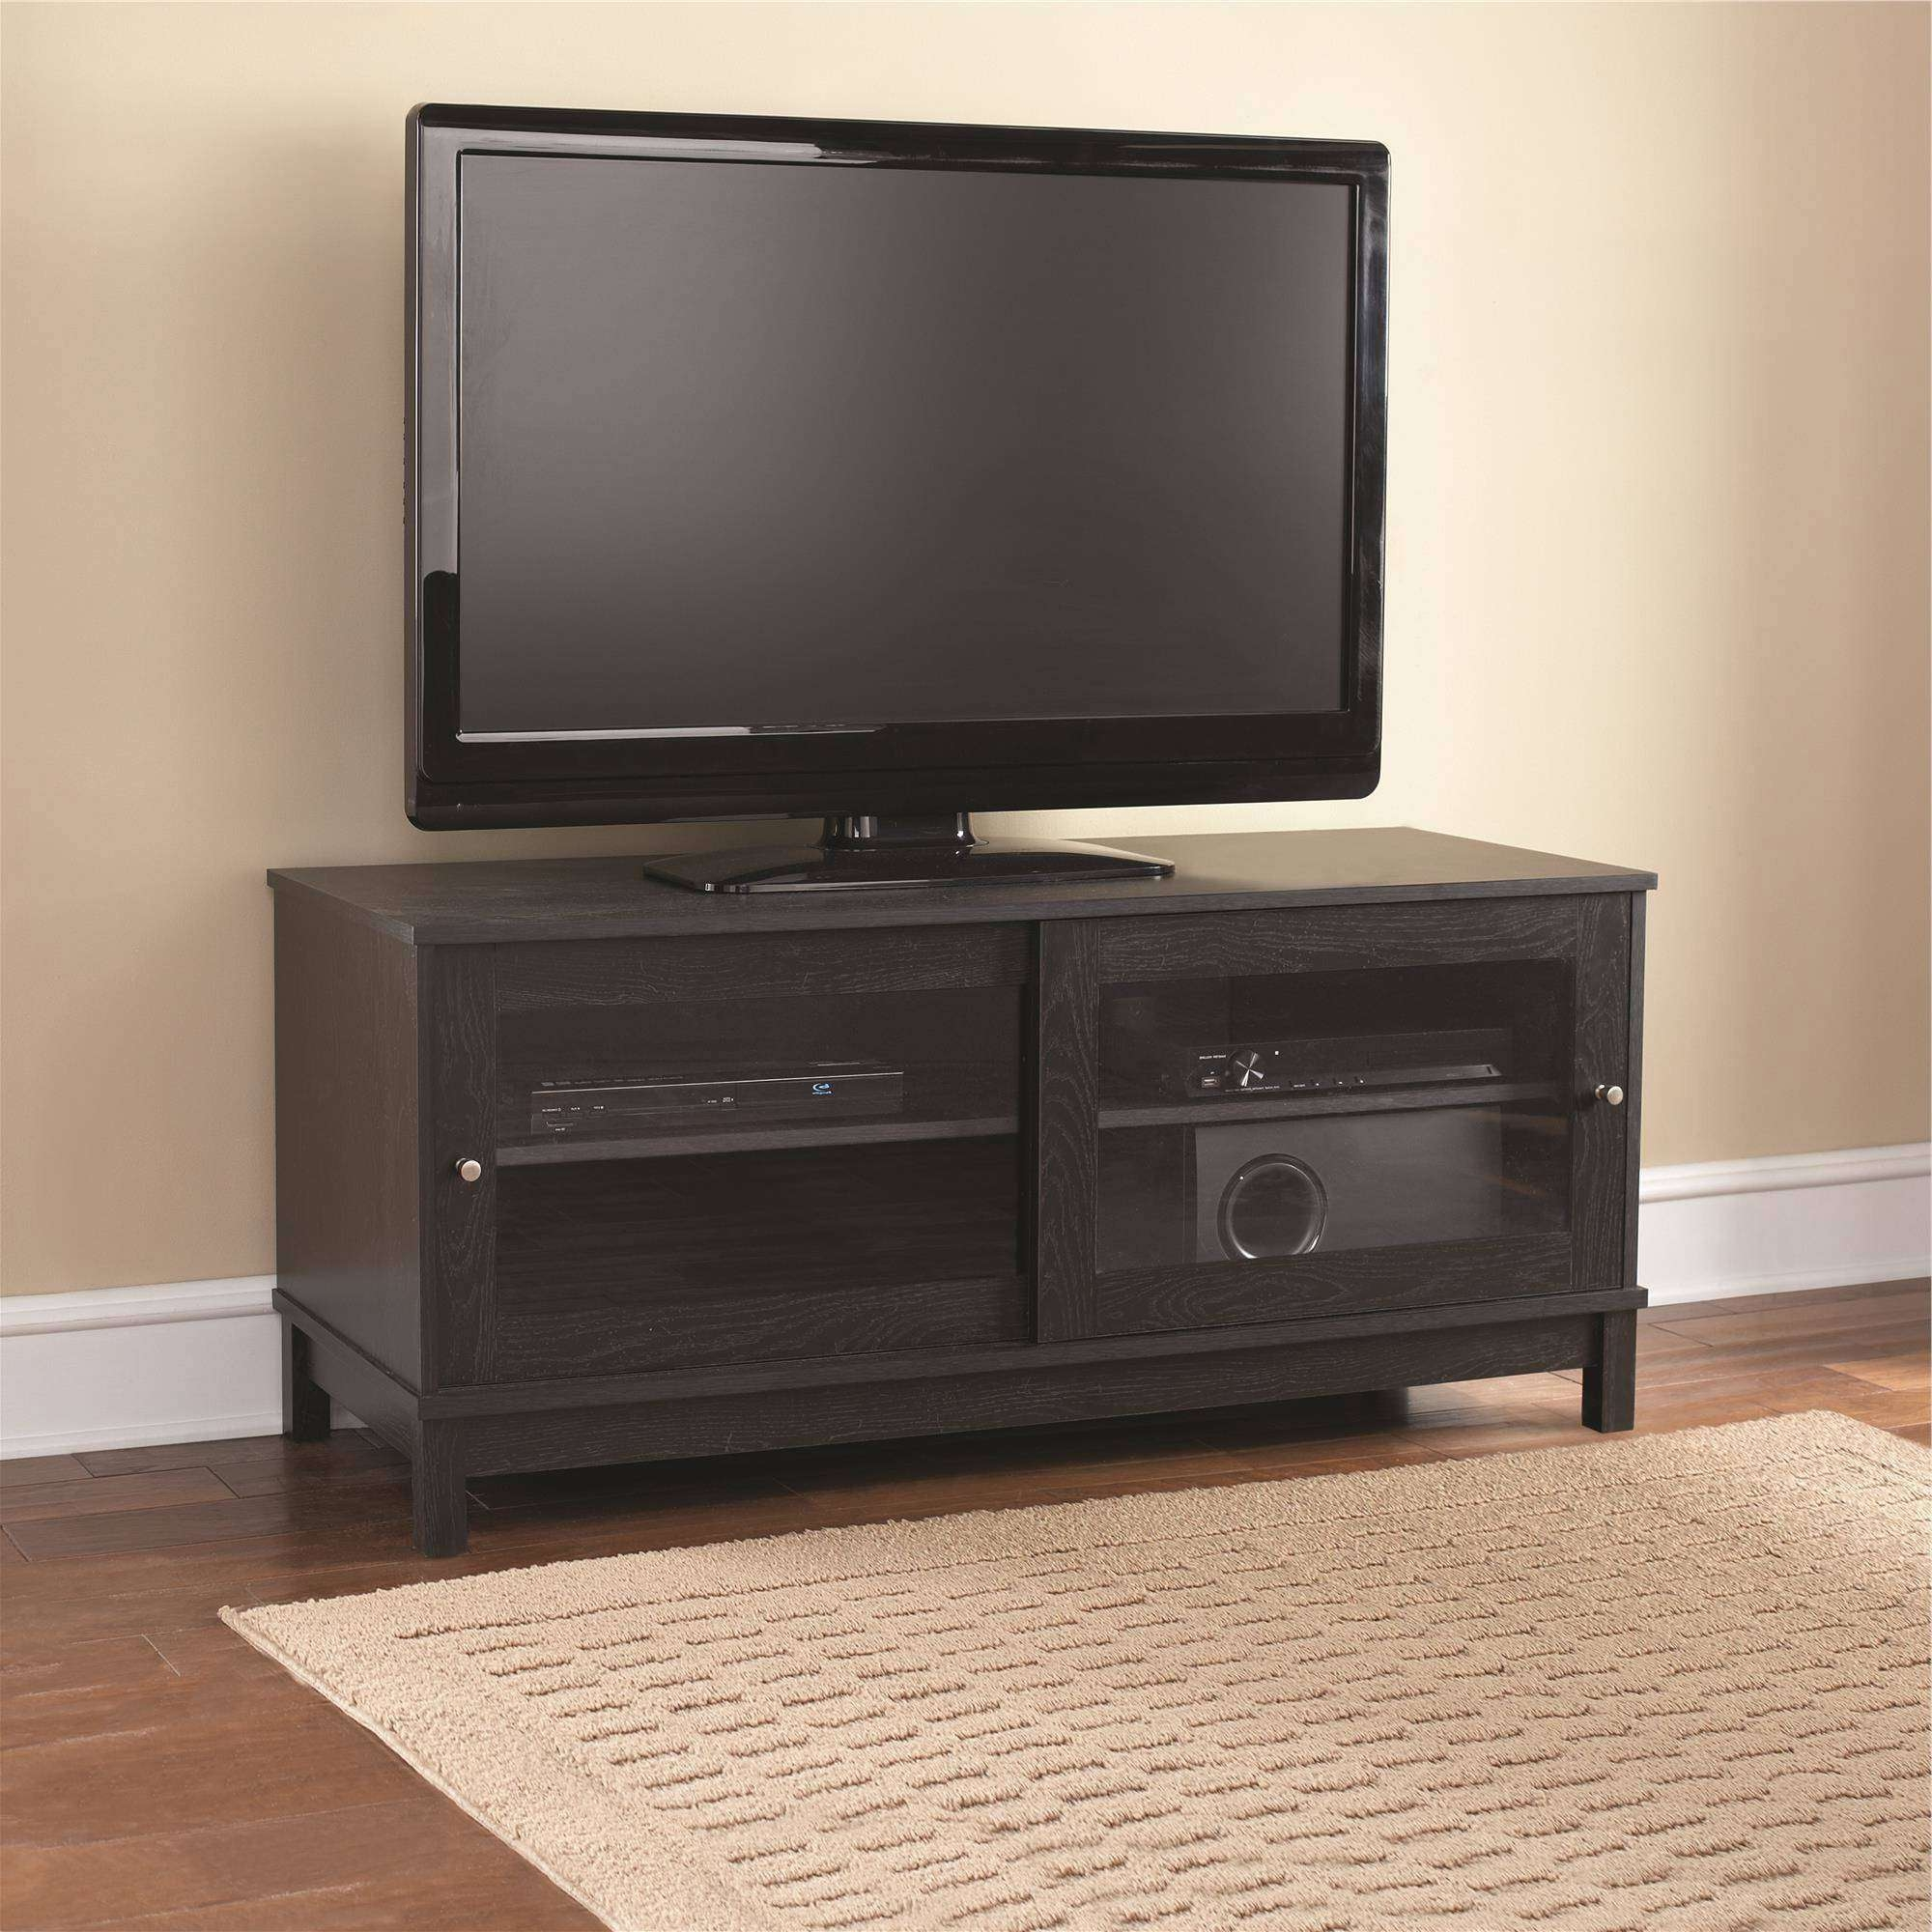 Wall Units: Costco Tv Stand Entertainment Center Furniturecostco In Cabinet Tv Stands (View 15 of 15)